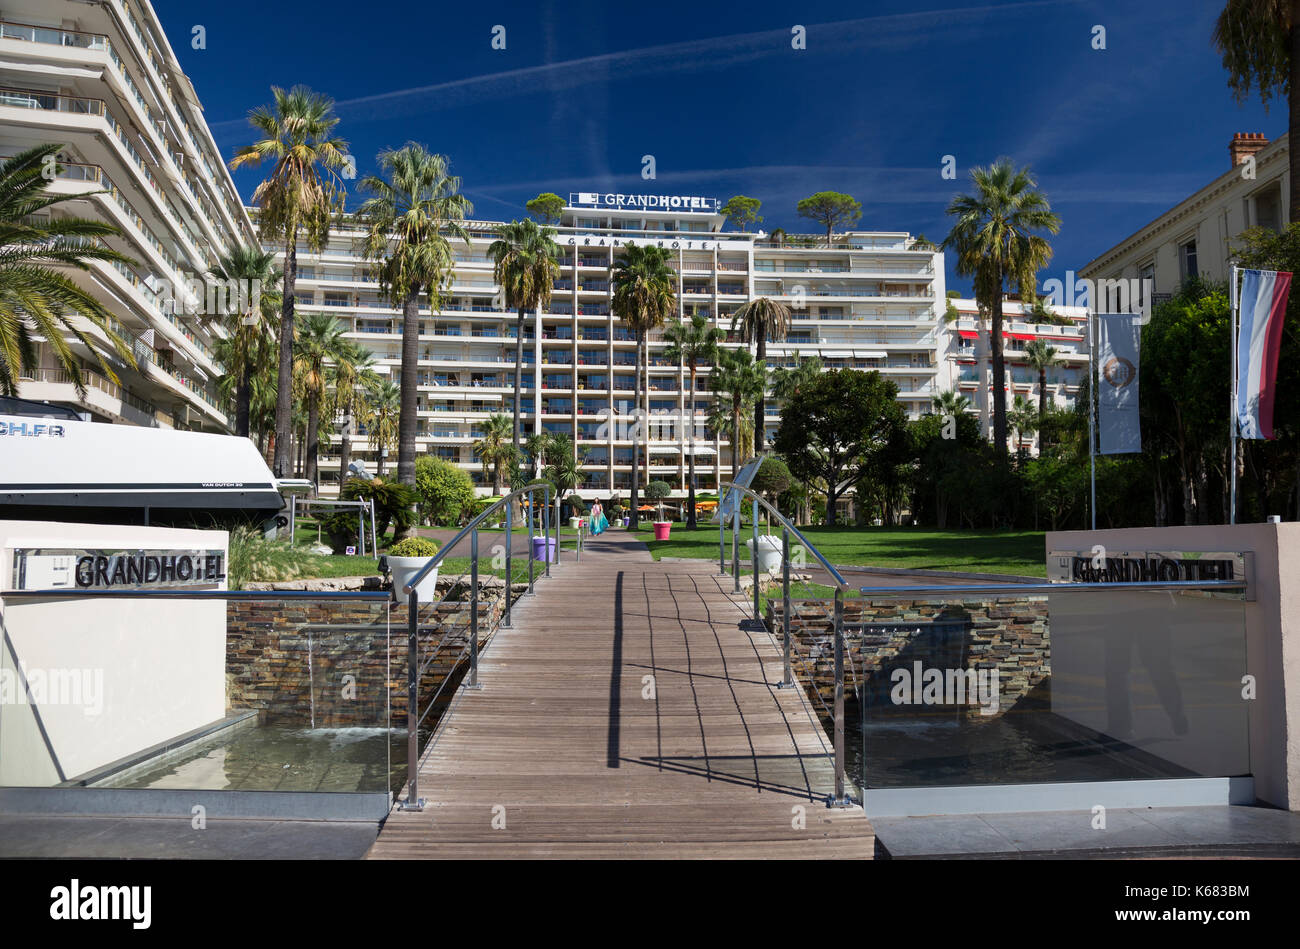 grand hotel cannes stock photos grand hotel cannes stock images alamy. Black Bedroom Furniture Sets. Home Design Ideas